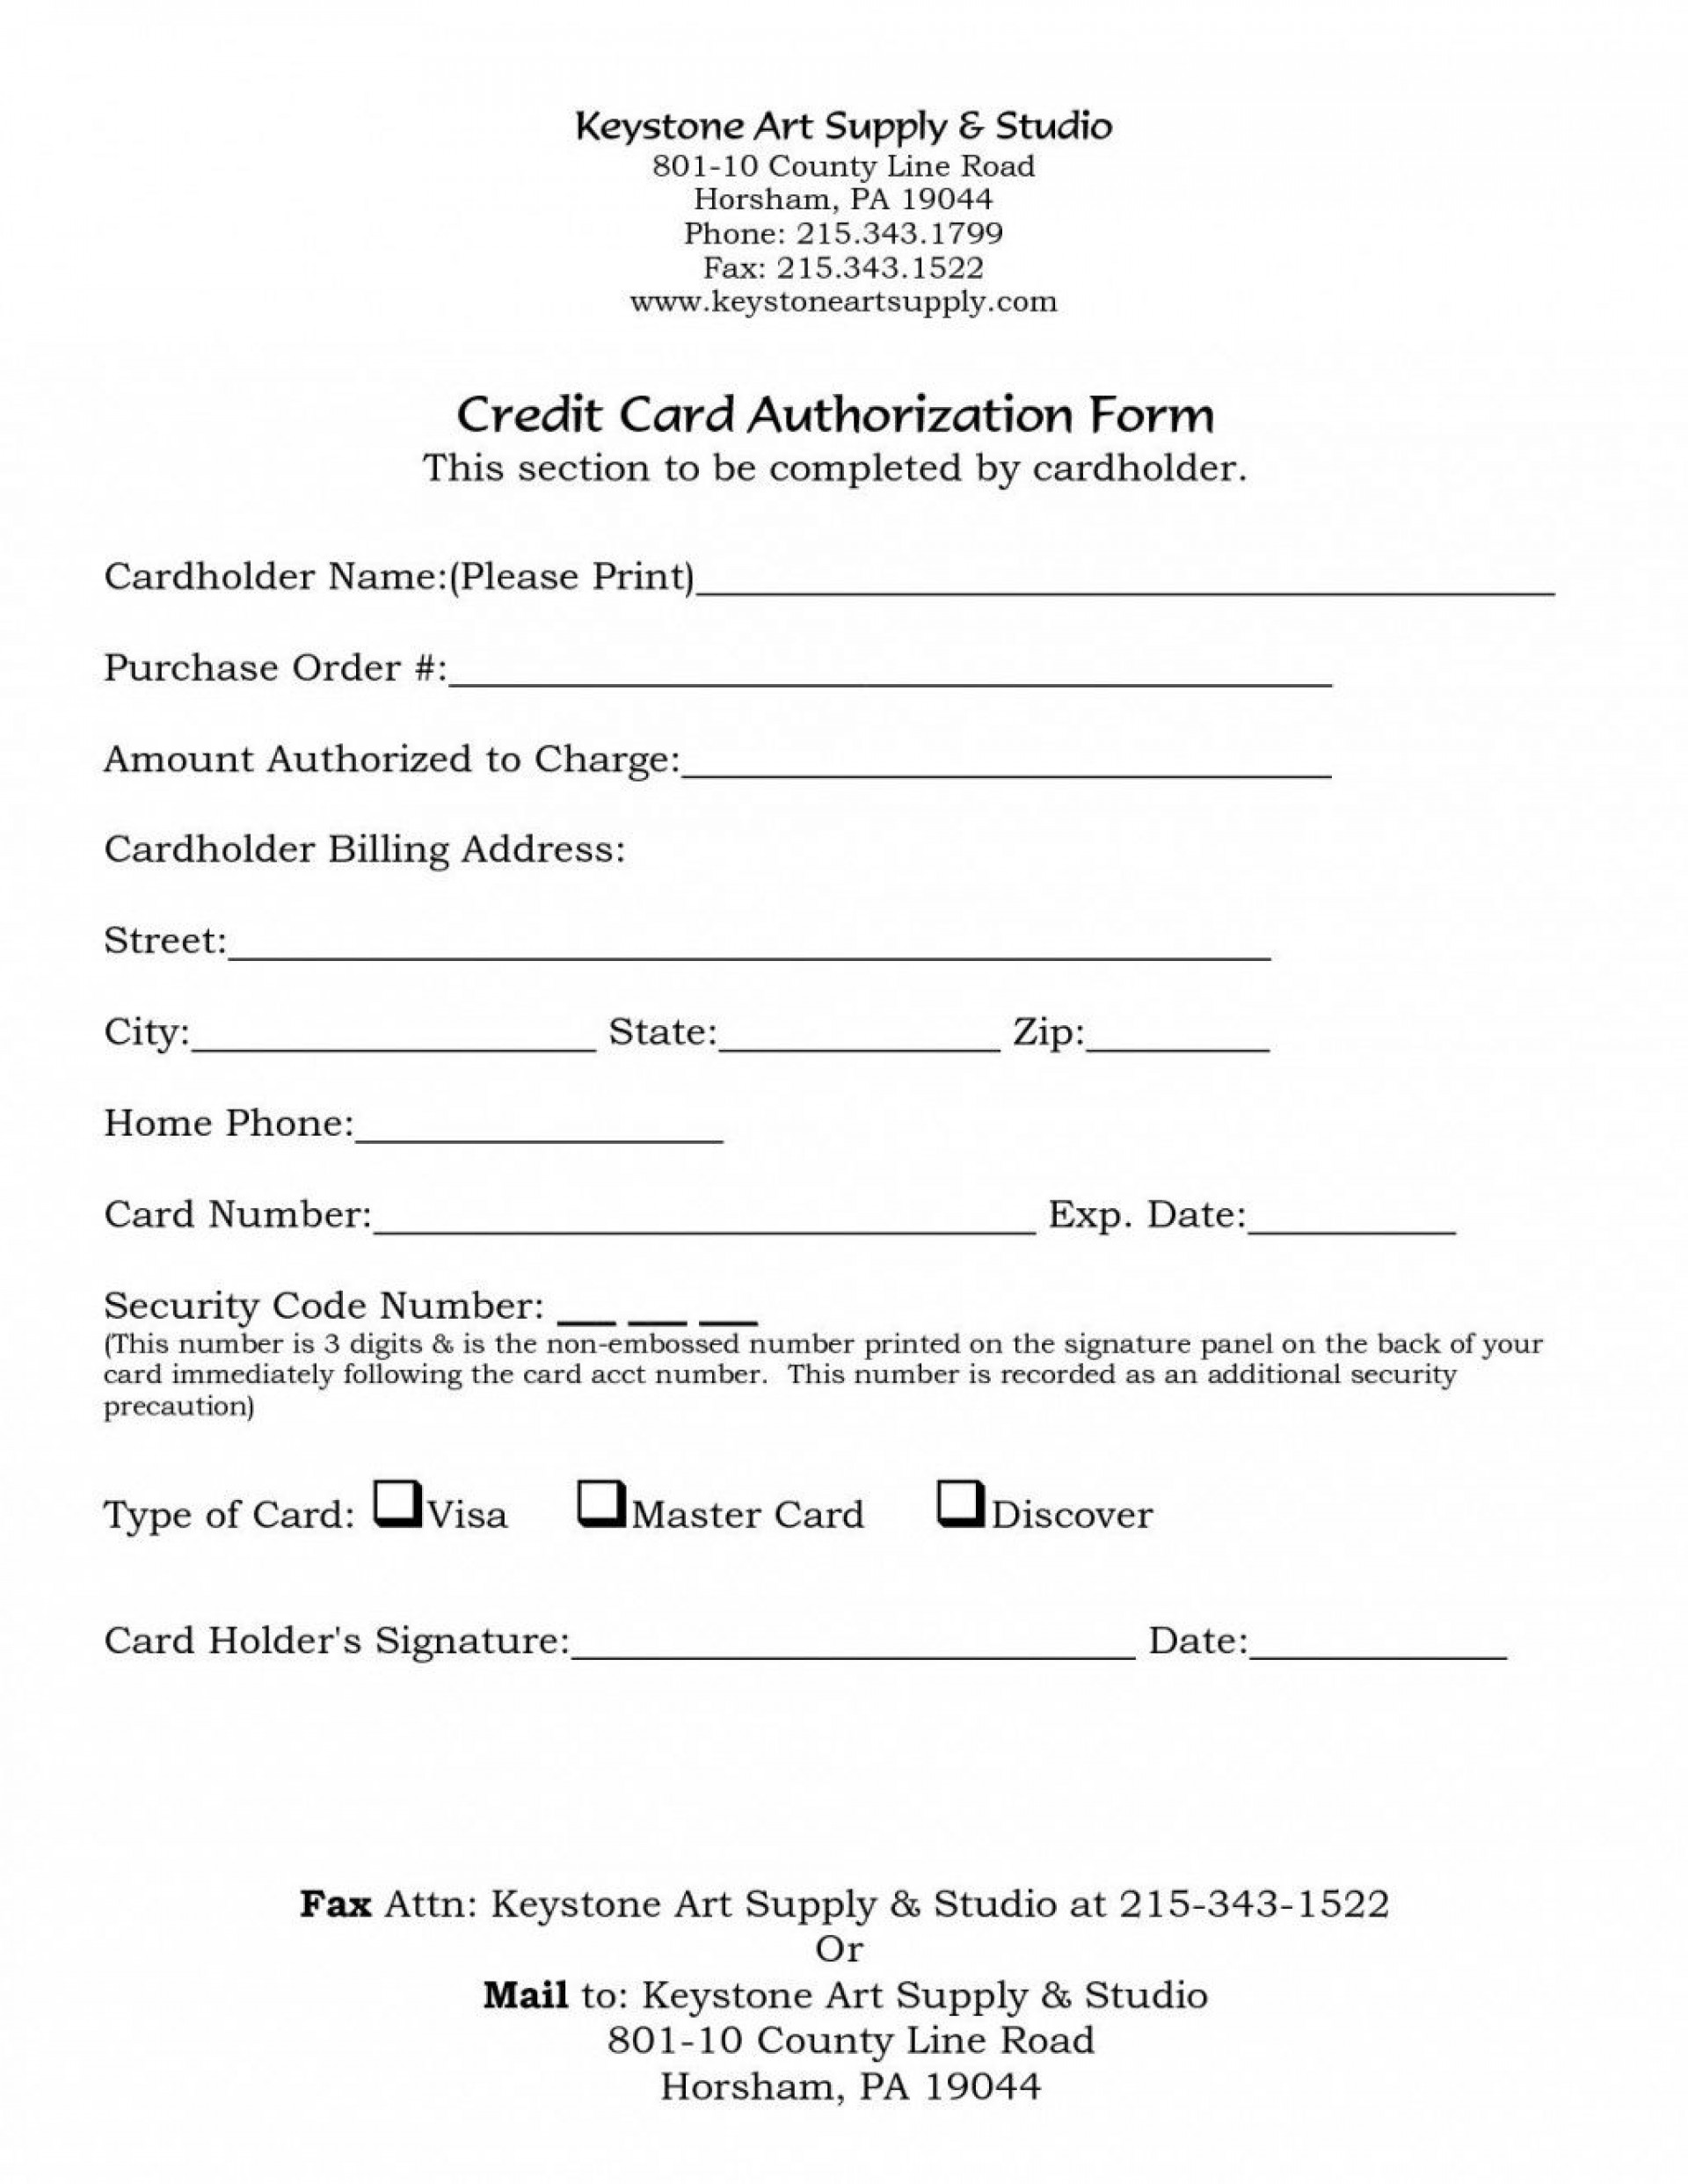 000 Fascinating One Time Credit Card Payment Authorization Form Template High Def 1920